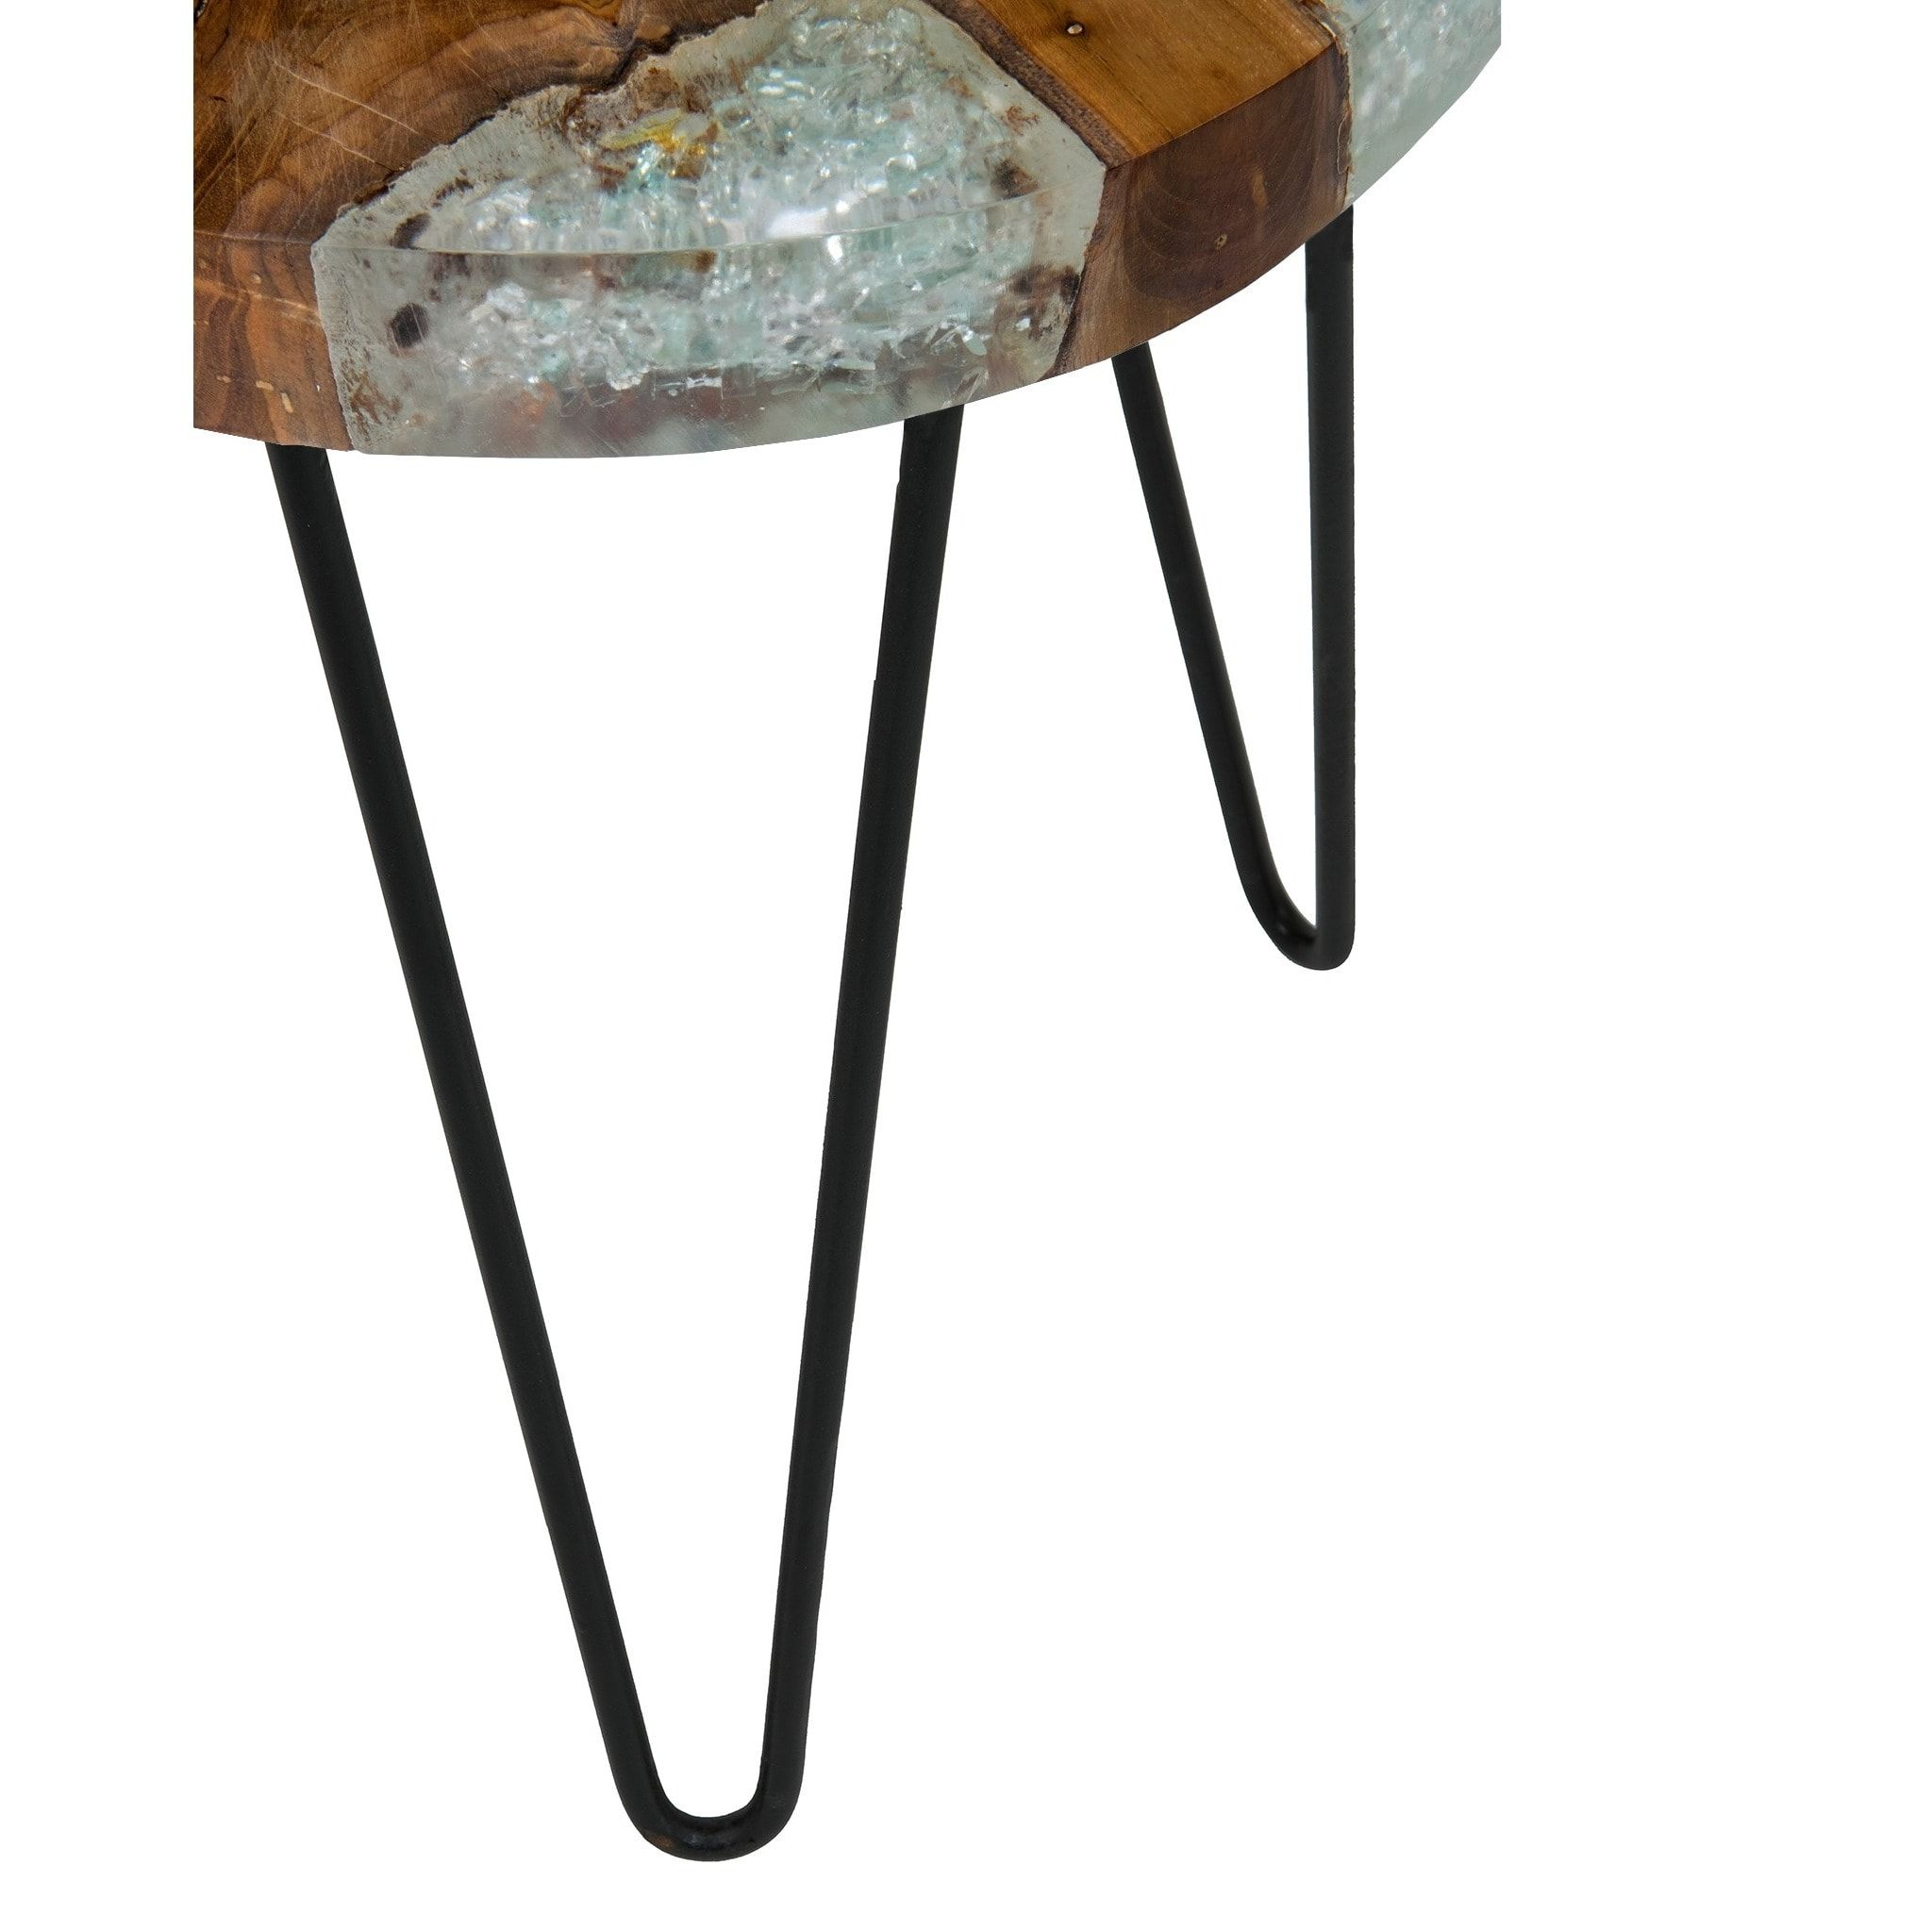 kakalina icy wood and iron small side table ping walnut one drawer accent project the best console behind couch bamboo french coffee centerpieces decorative corners pop bathroom